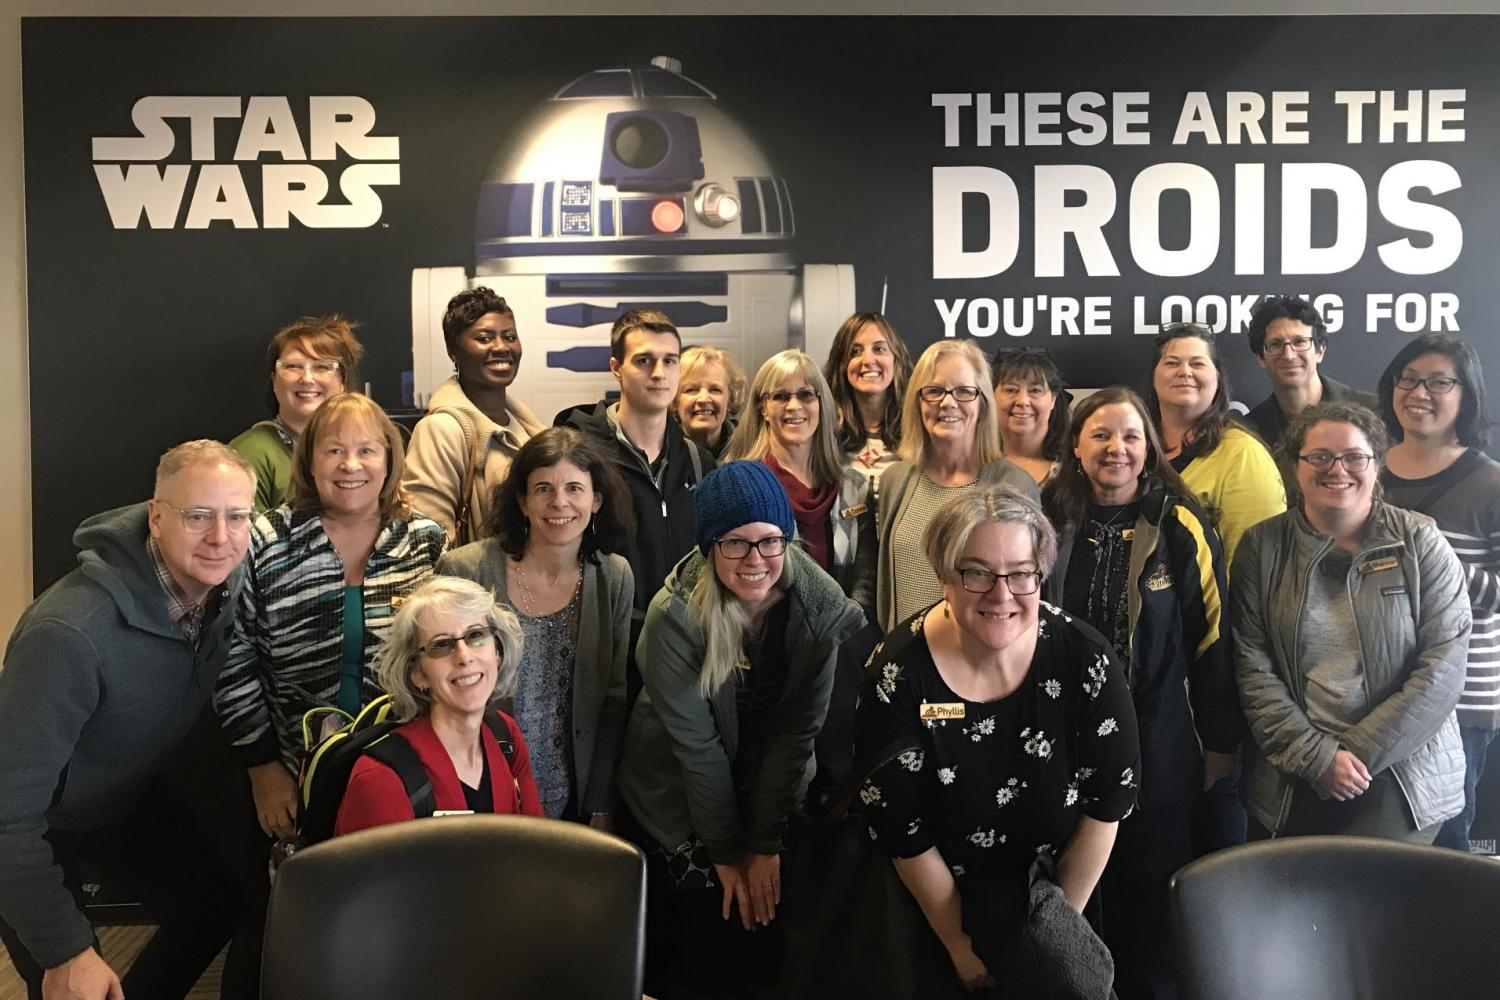 Workshop attendees posing in front of a Star Wars poster